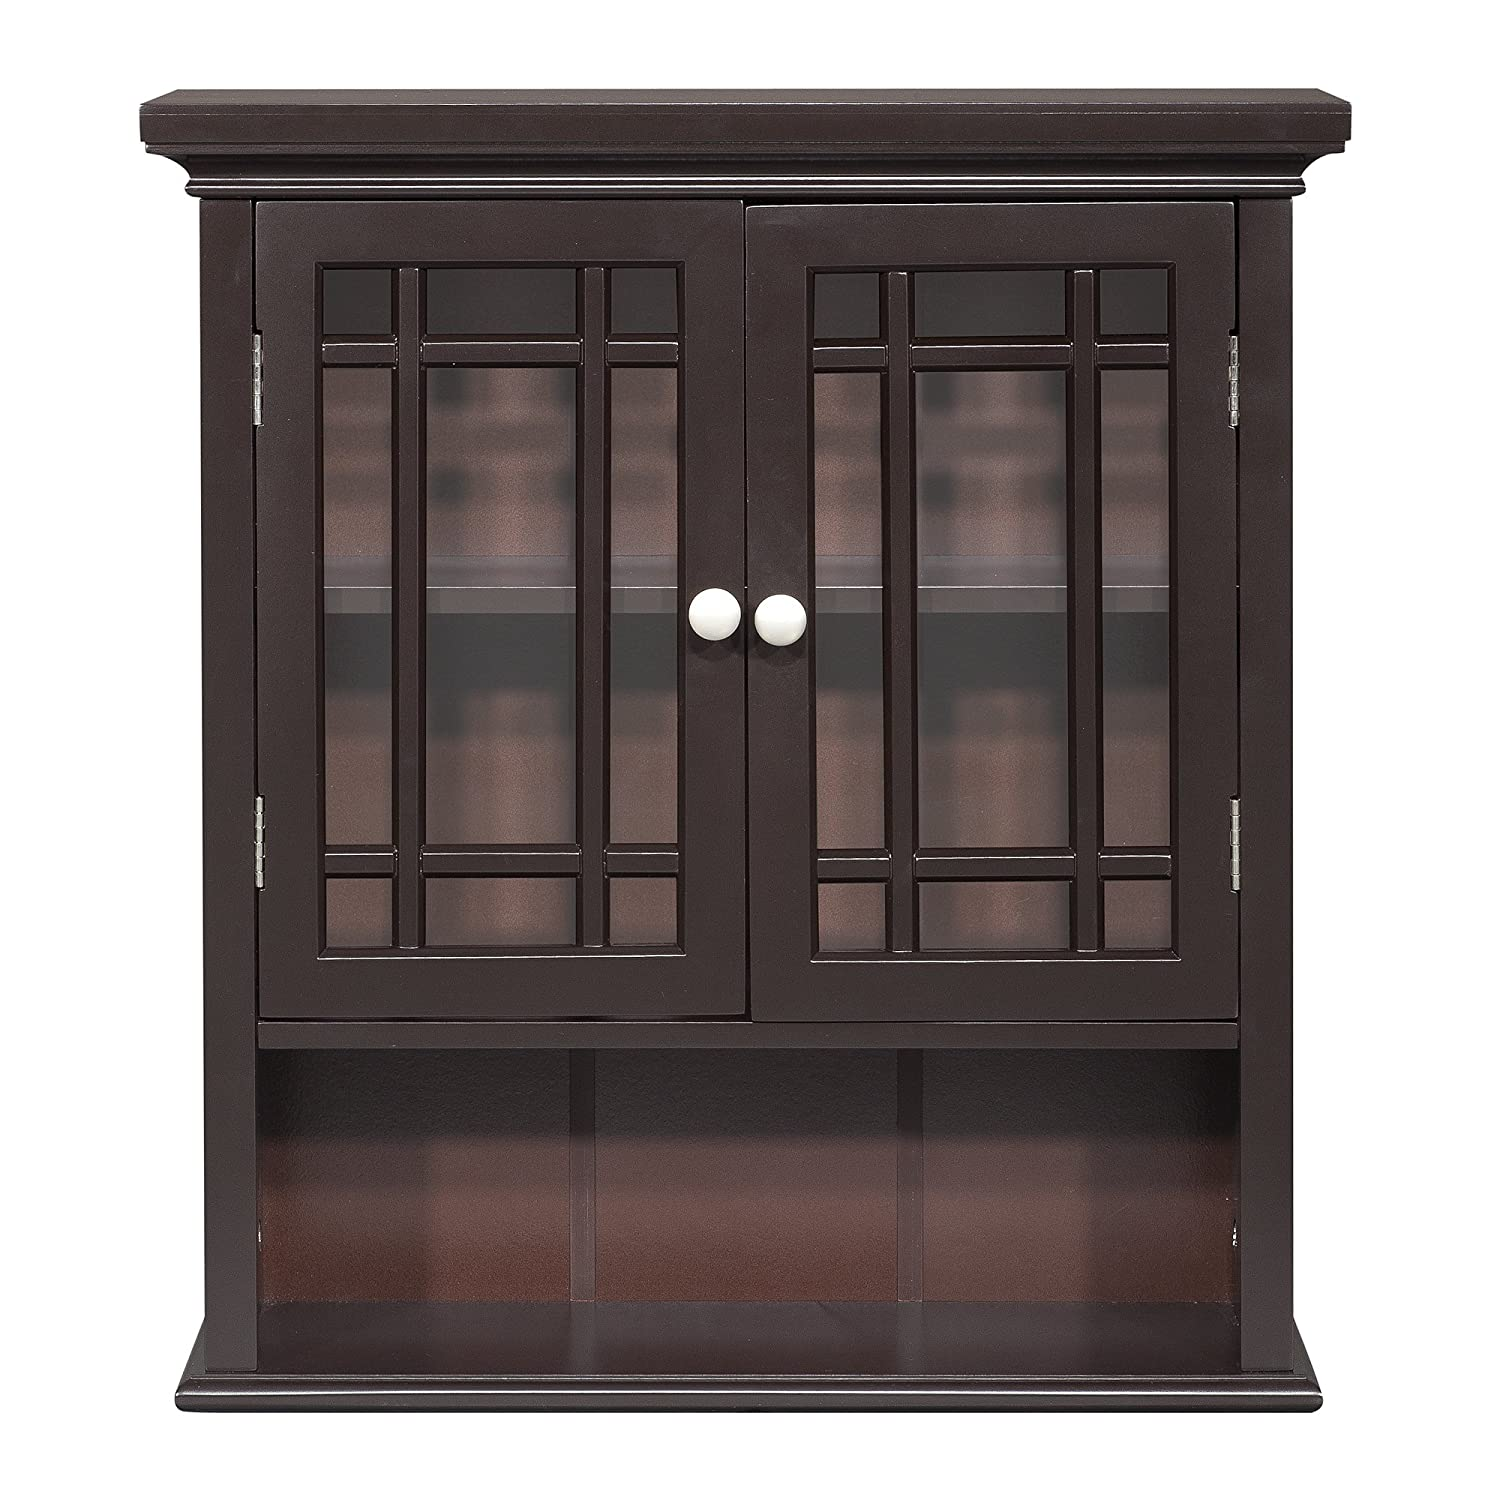 Incroyable Amazon.com: Elegant Home Fashion Neal Wall Cabinet With 2 Door And Shelf:  Kitchen U0026 Dining